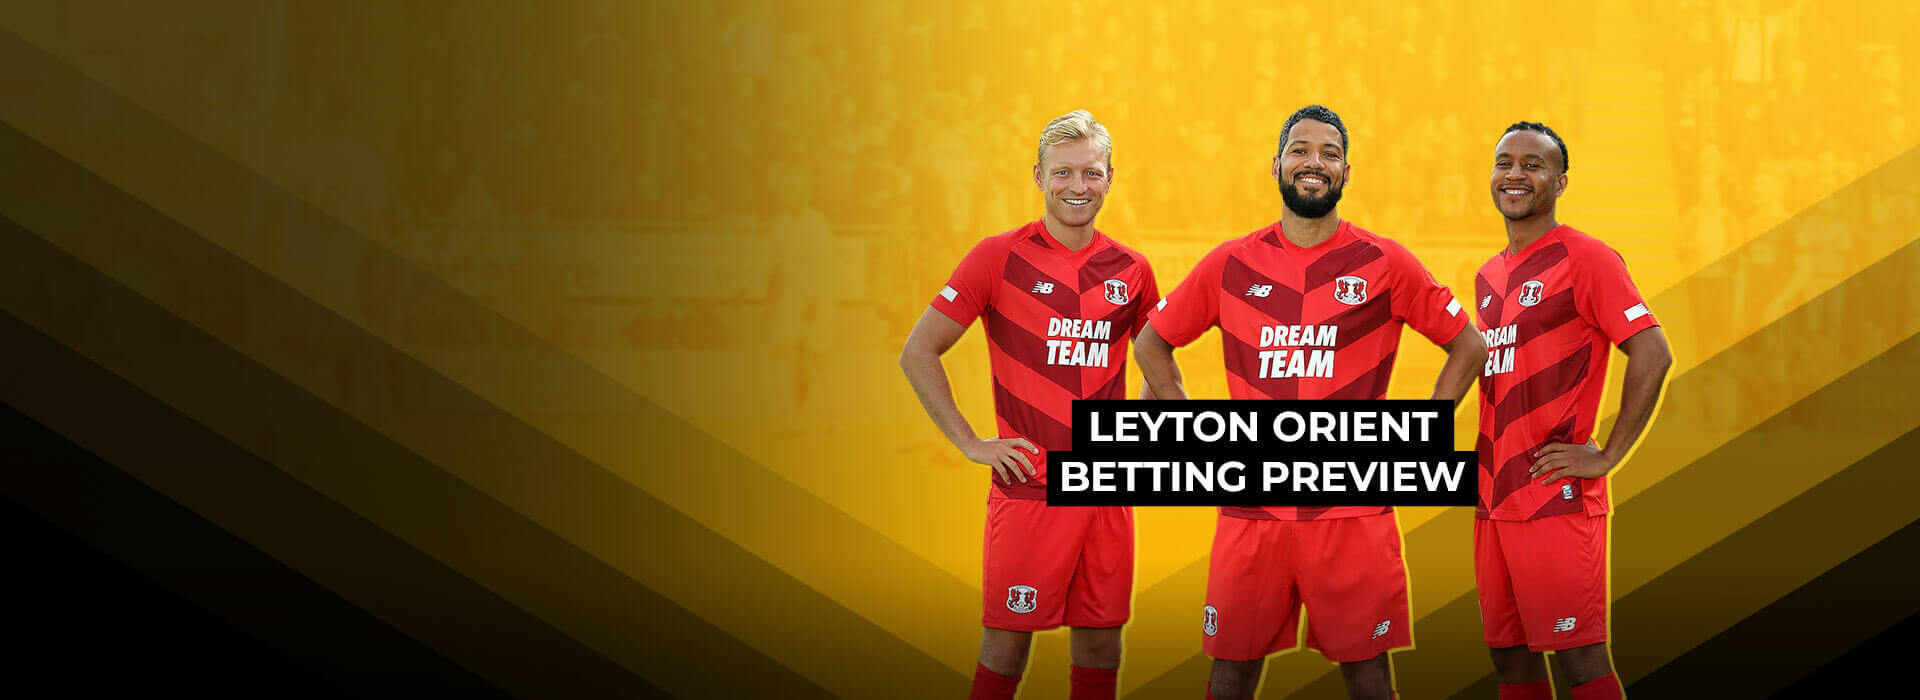 Salford City vs Leyton Orient: Betting Preview